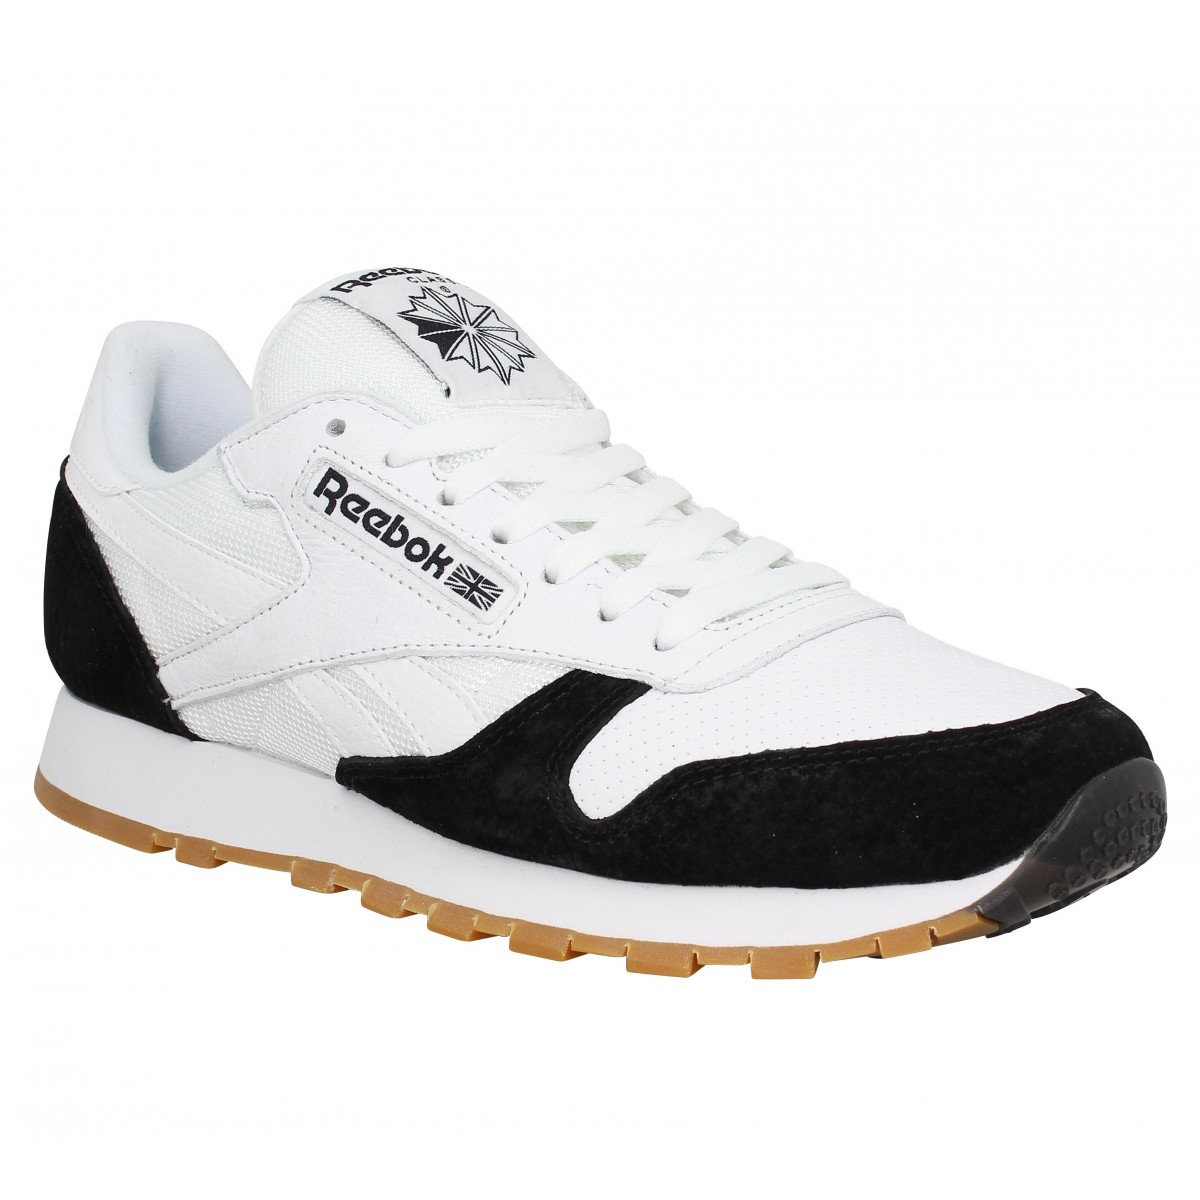 REEBOK Classic Leather SPP Blanc Noir